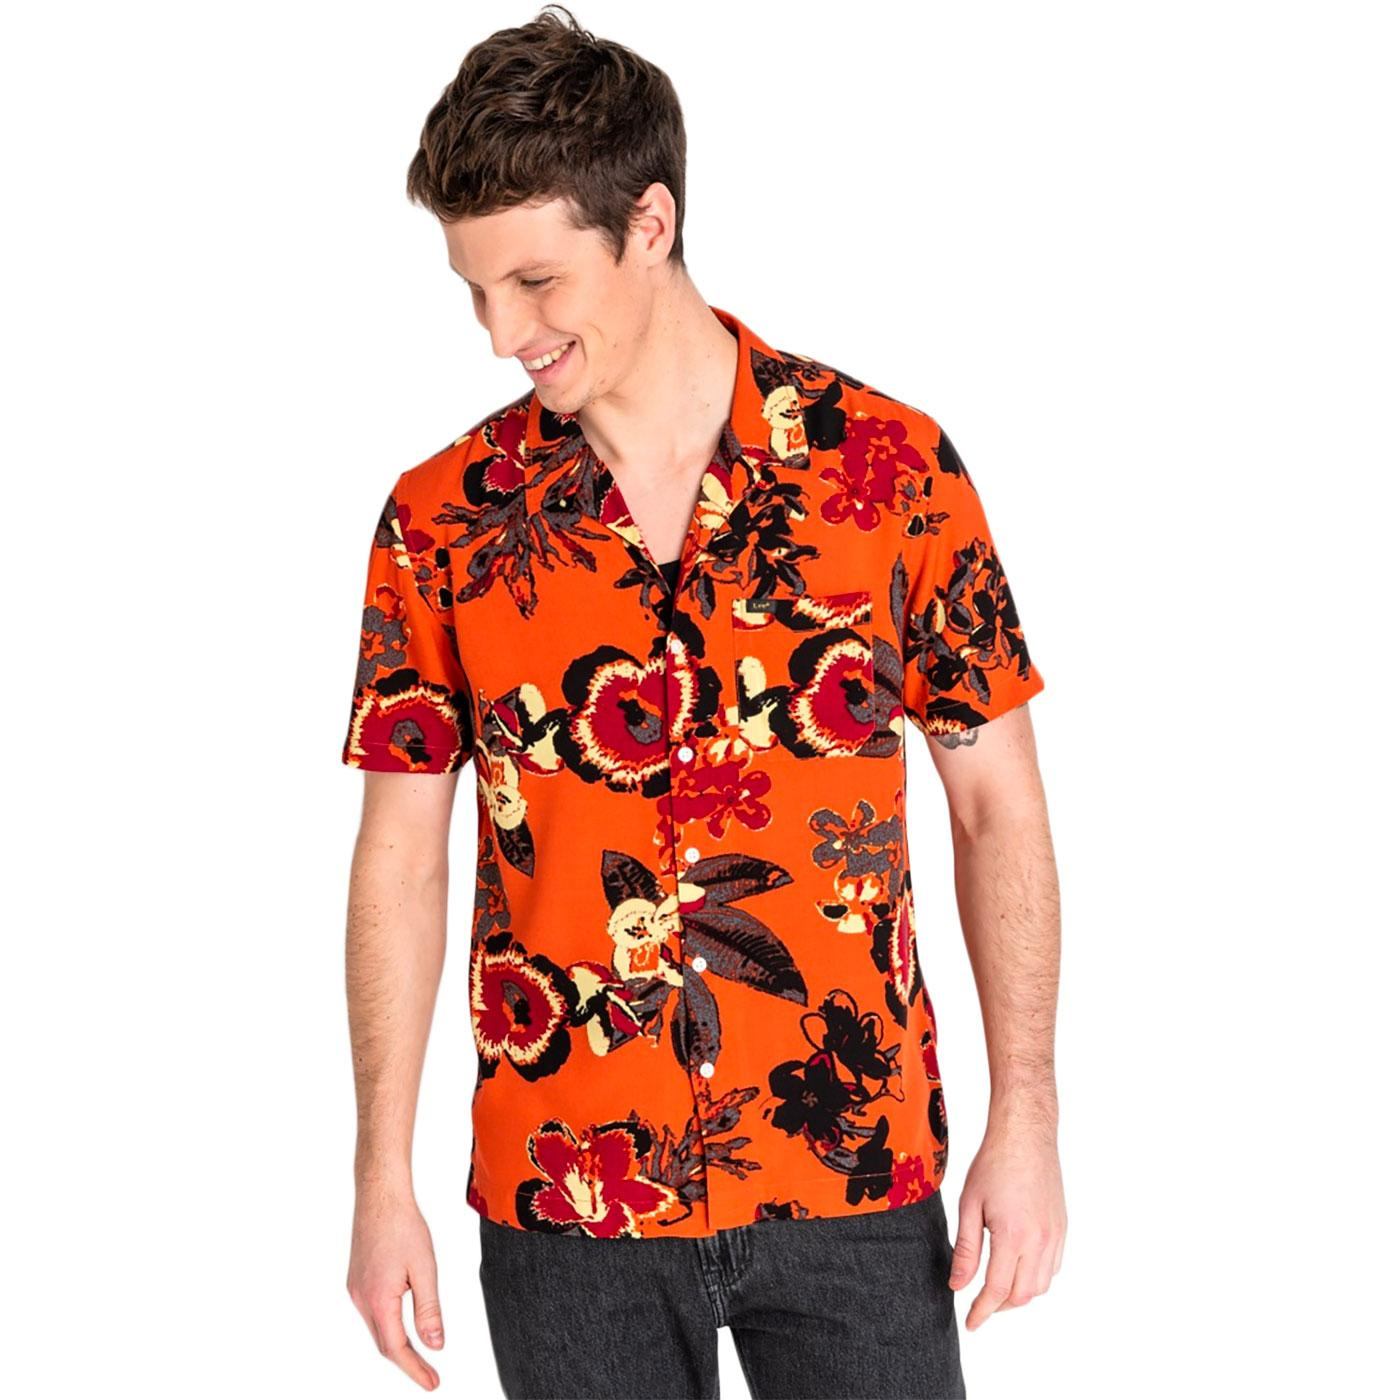 LEE Retro 1970s Floral Hawaiian Shirt (Burned Red)